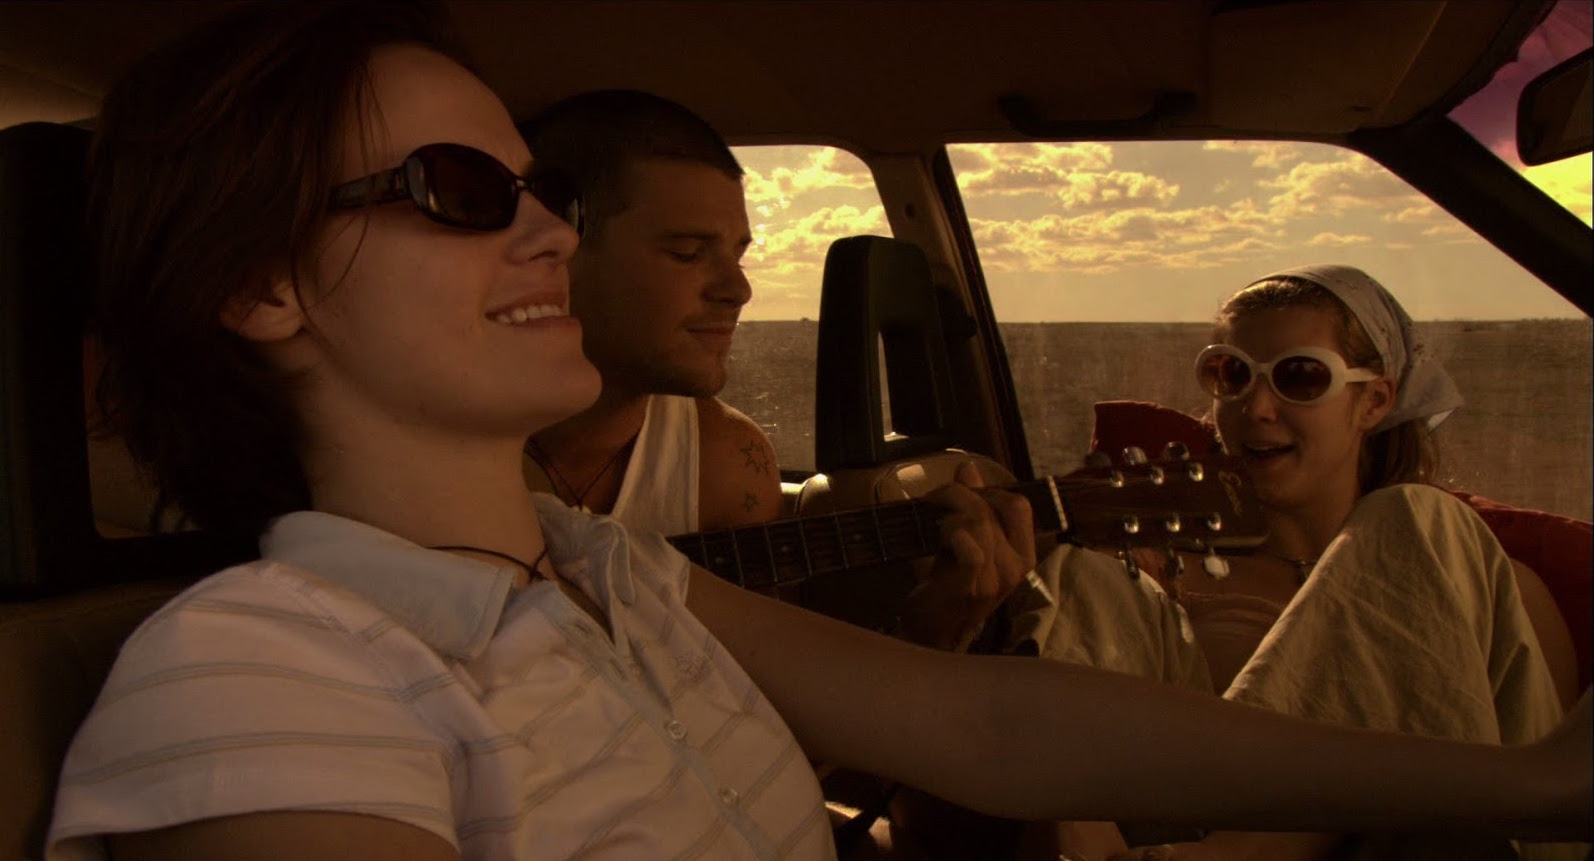 Backpackers on a trip through the Outback - Cassandra Magrath, Nathan Phillips, Kestie Morassi in Wolf Creek (2005)